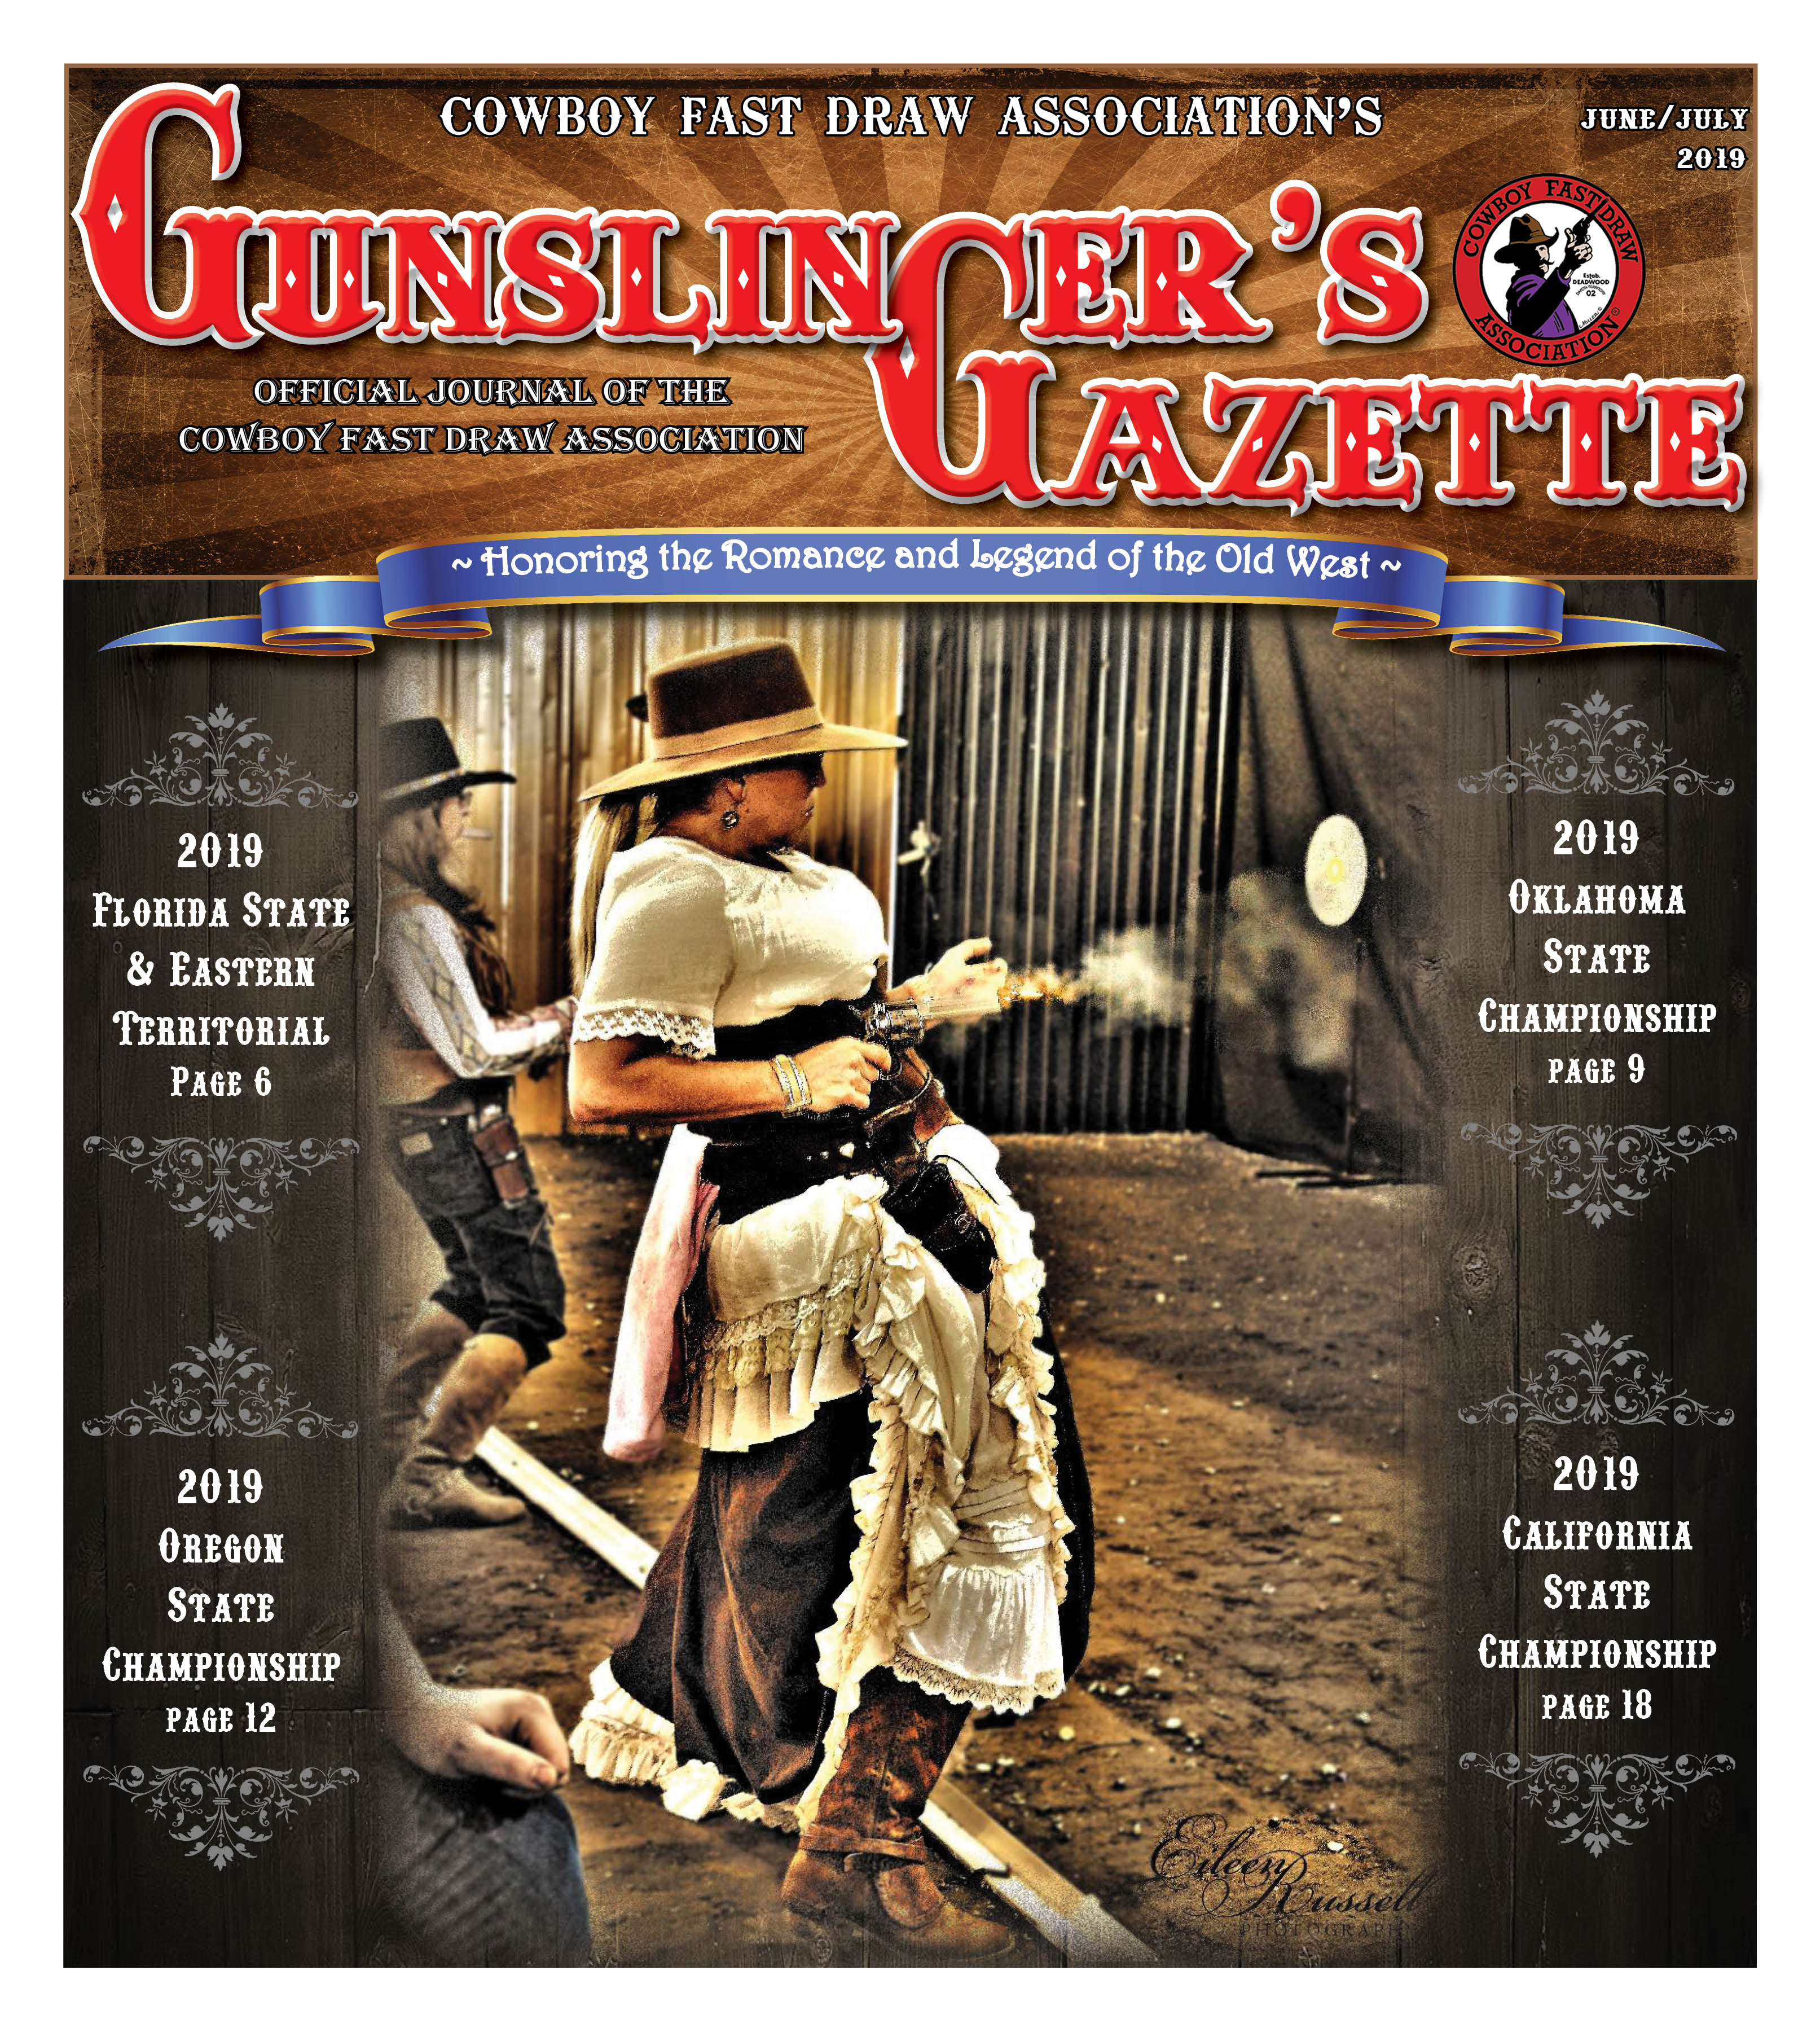 GunslingersGazette June July 2019 cover